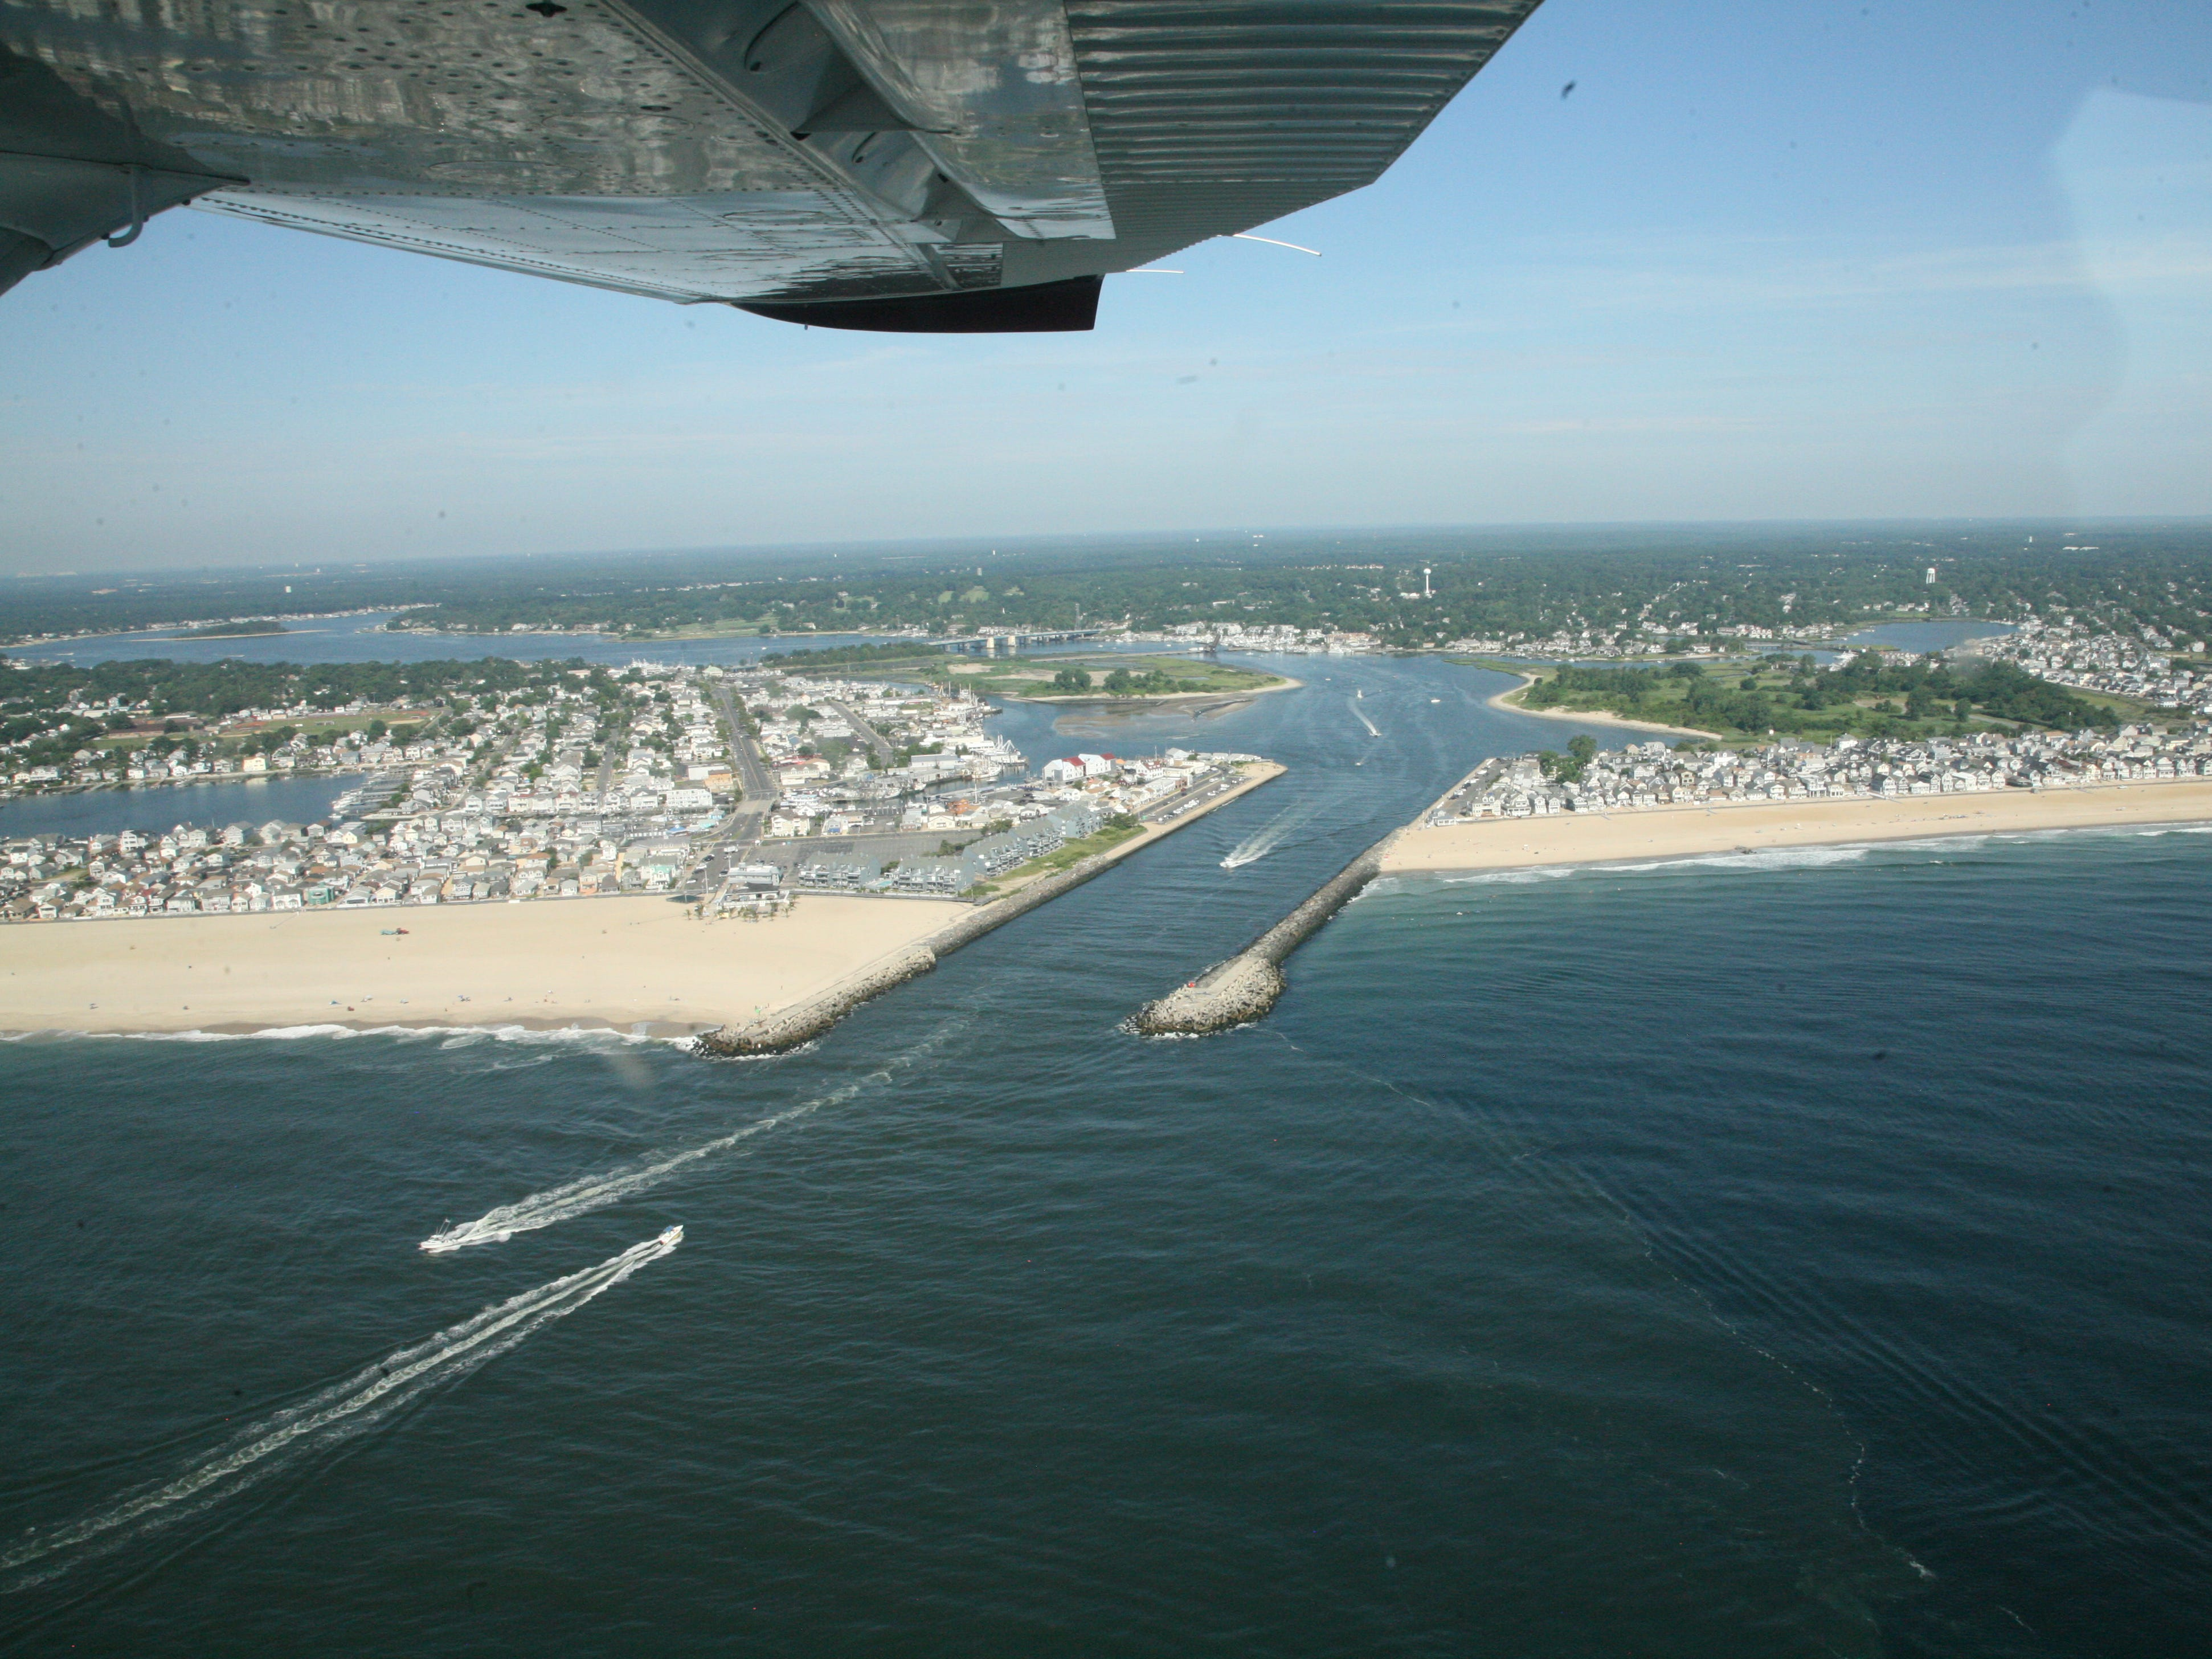 The Manasquan Inlet separates Point Pleasant Beach to the left and Manasquan to the right.